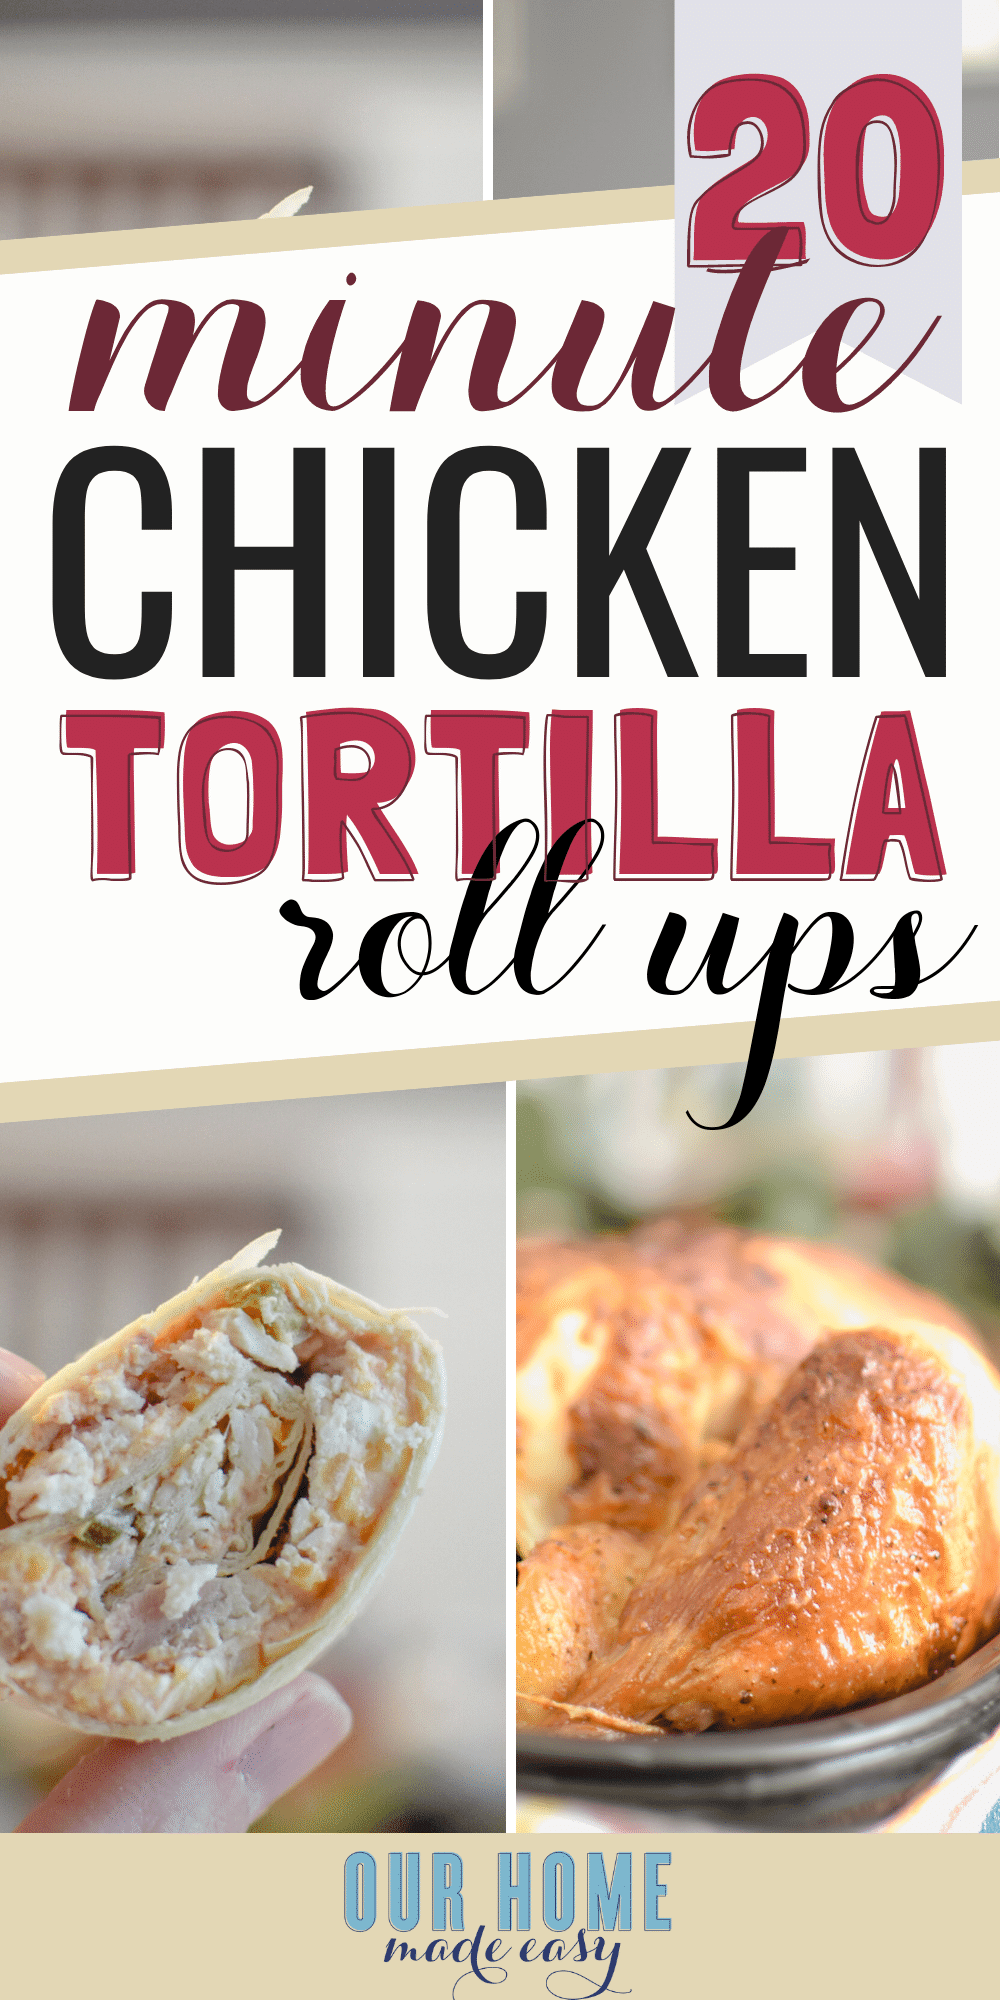 These super quick & easy chicken tortilla pinwheel roll ups are the dinner you need when you don't want to cook! No baking and ready in just a few minutes! #dinner #chicken #ourhomemadeeasy